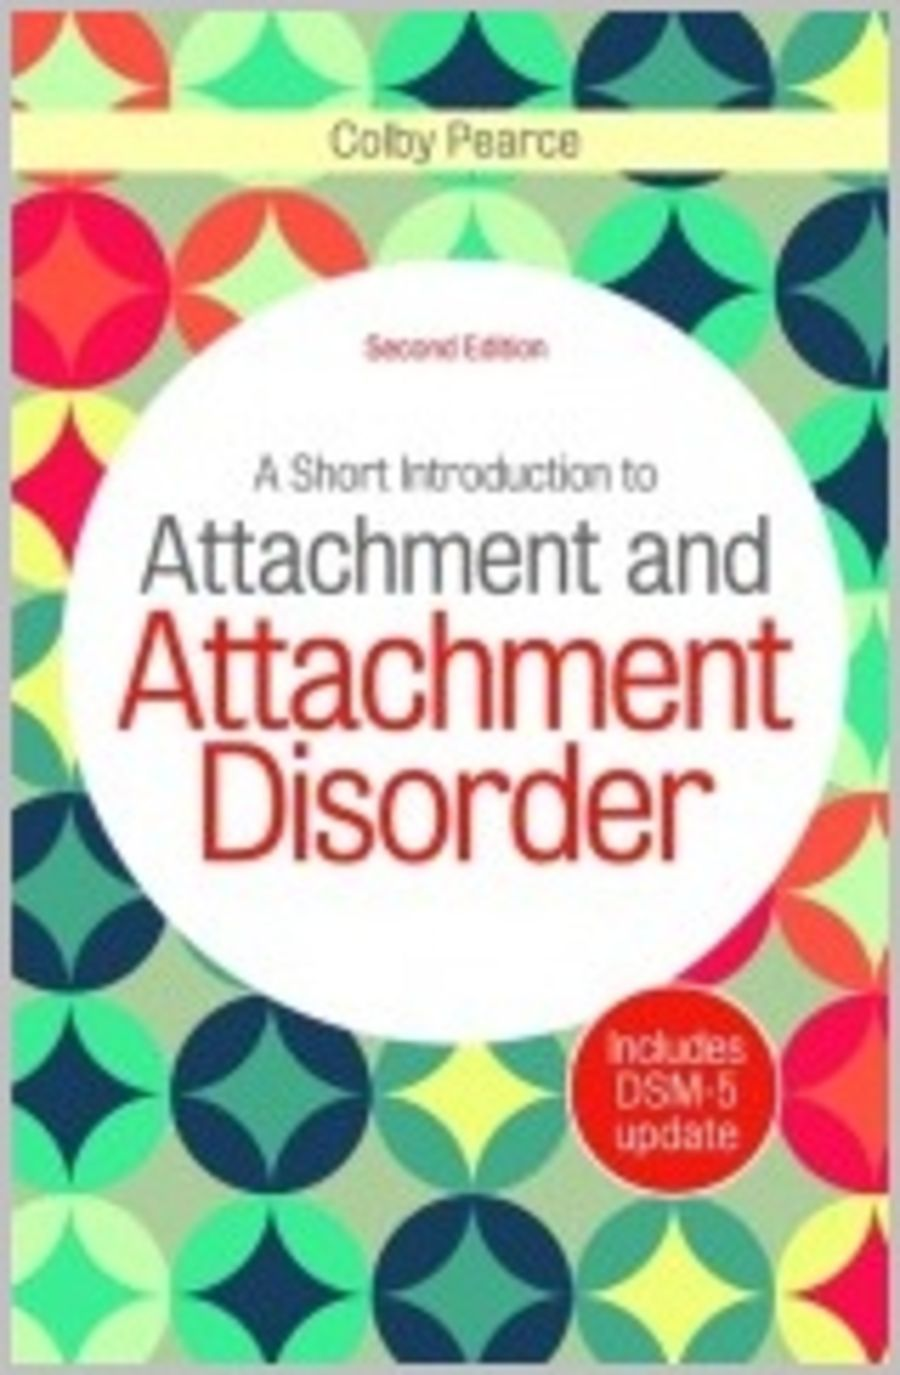 Short Introduction to Attachment and Attachment Disorder.